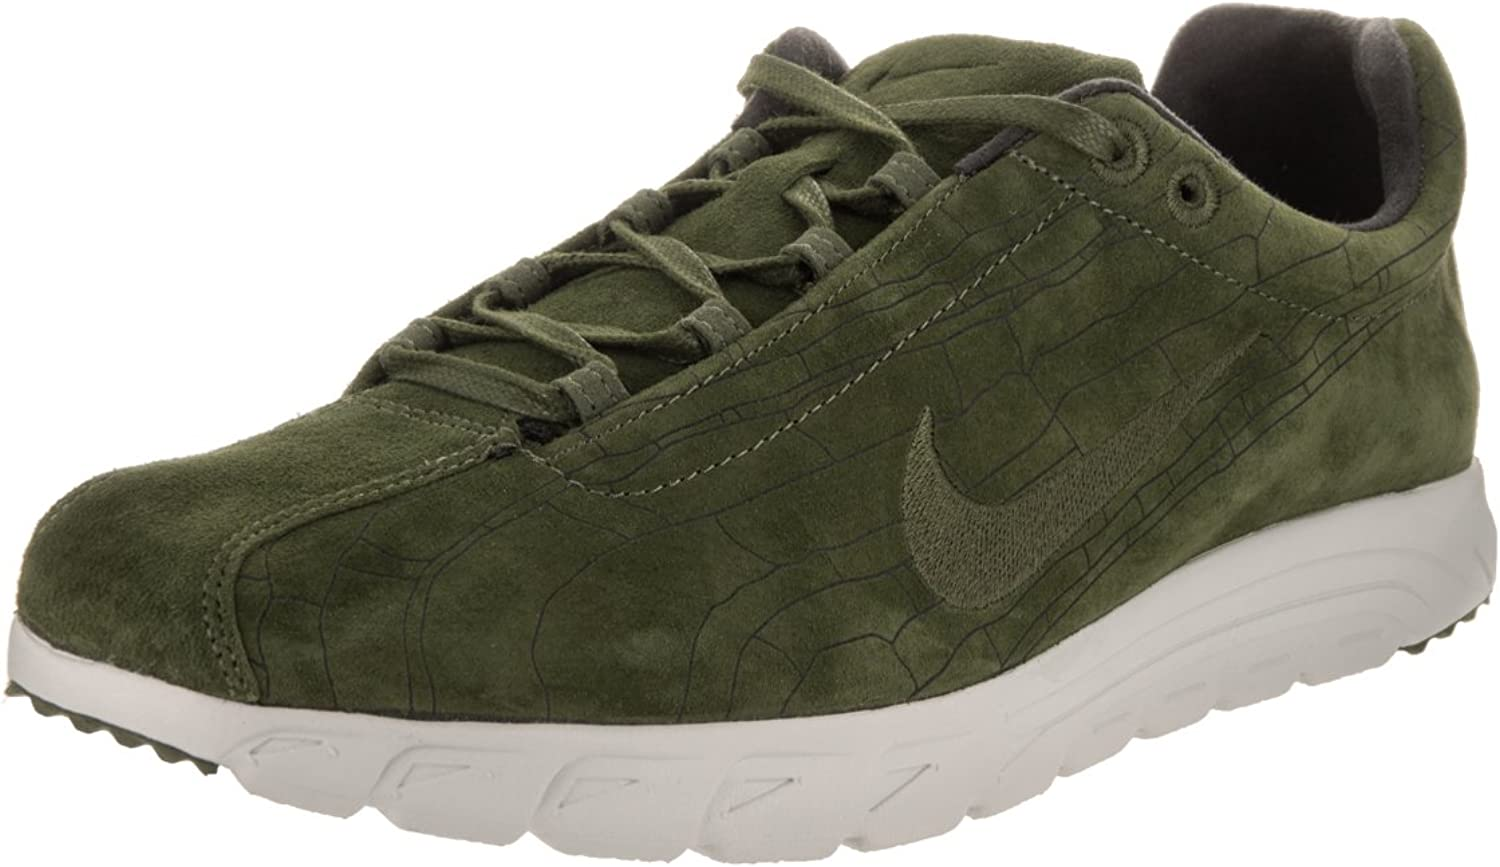 Nike Men's Mayfly Leather Prm Casual shoes